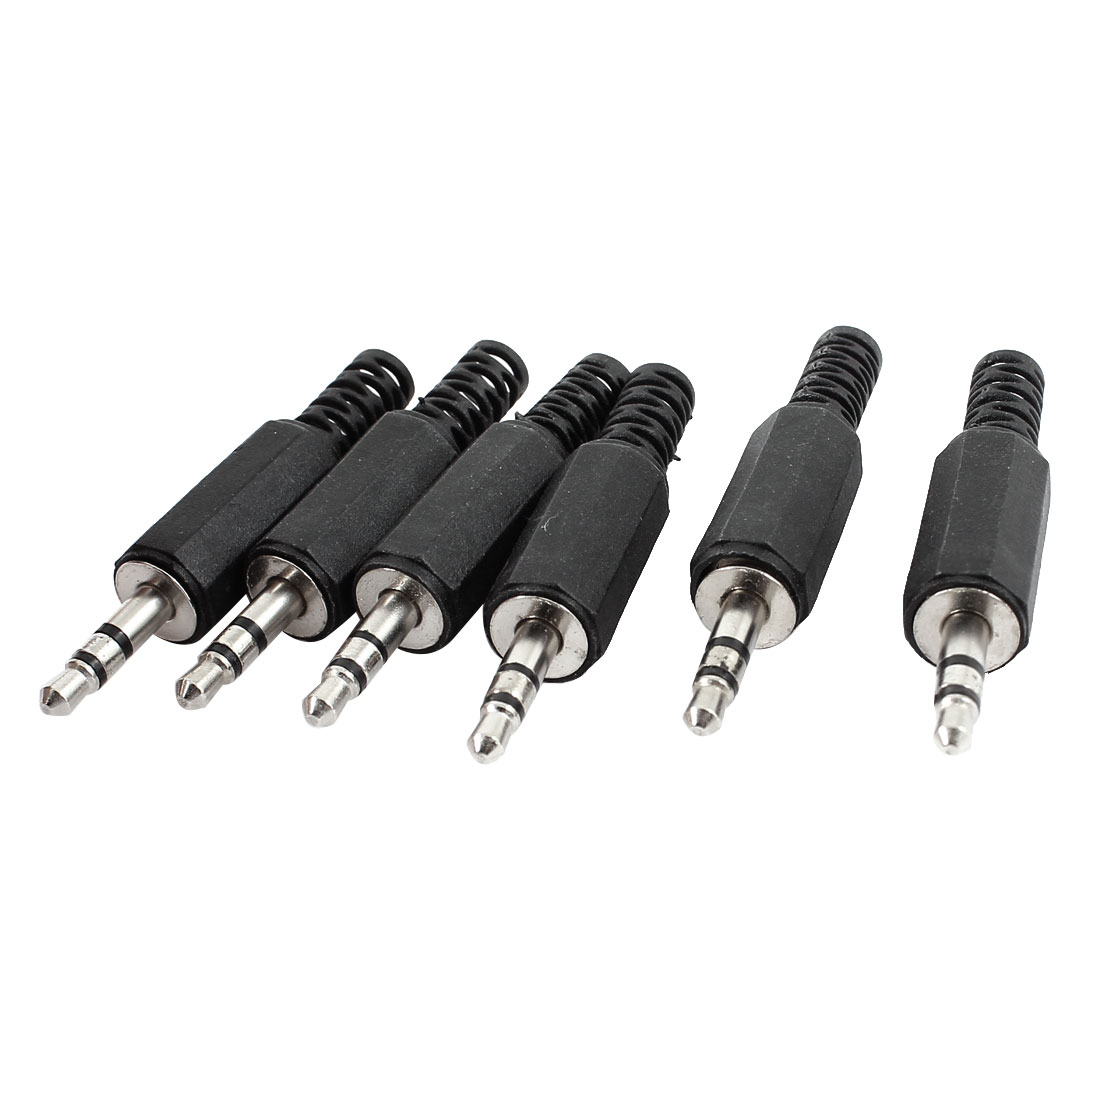 6 Pcs 3.5mm Male Stereo Audio Jack Adapter Connector for MP3 Headphone